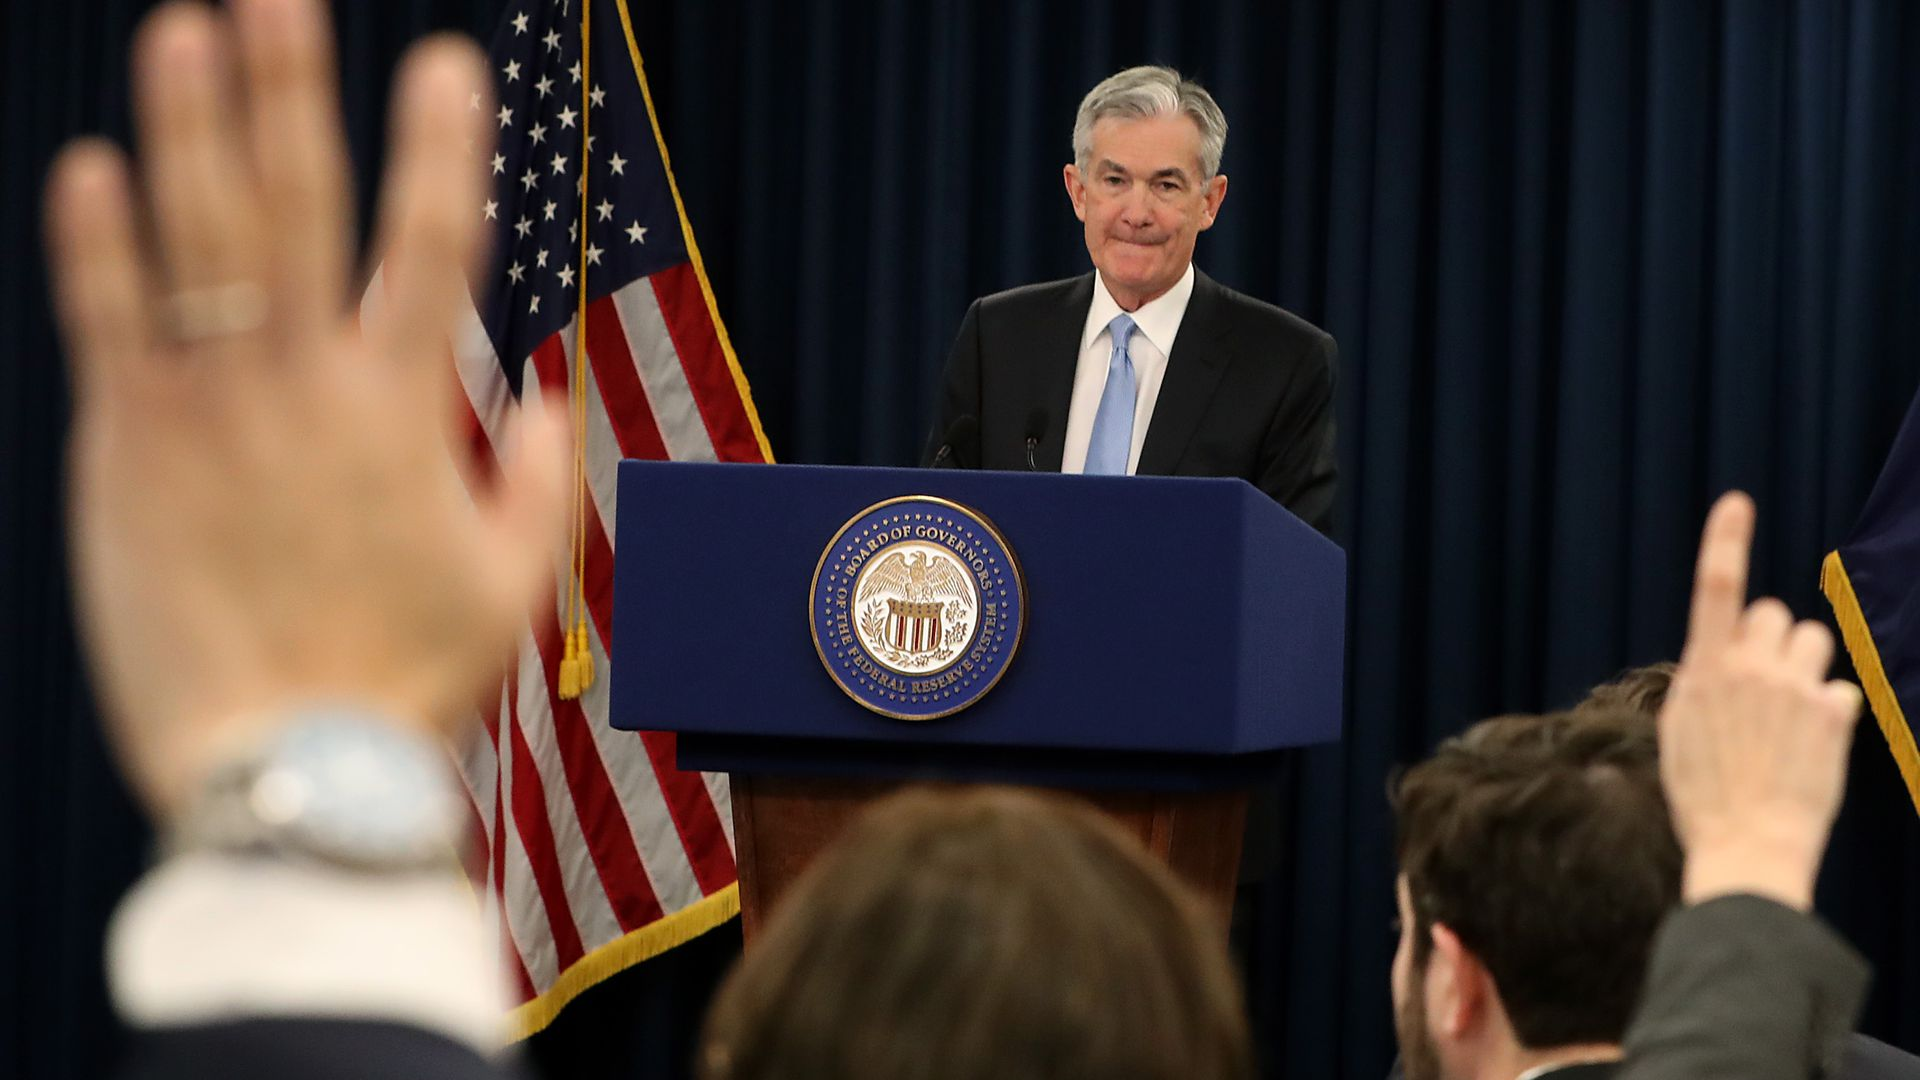 WASHINGTON, DC - MARCH 20: Federal Reserve Board Chairman Jerome Powell speaks during a news conference on March 20, 2019 in Washington, DC.